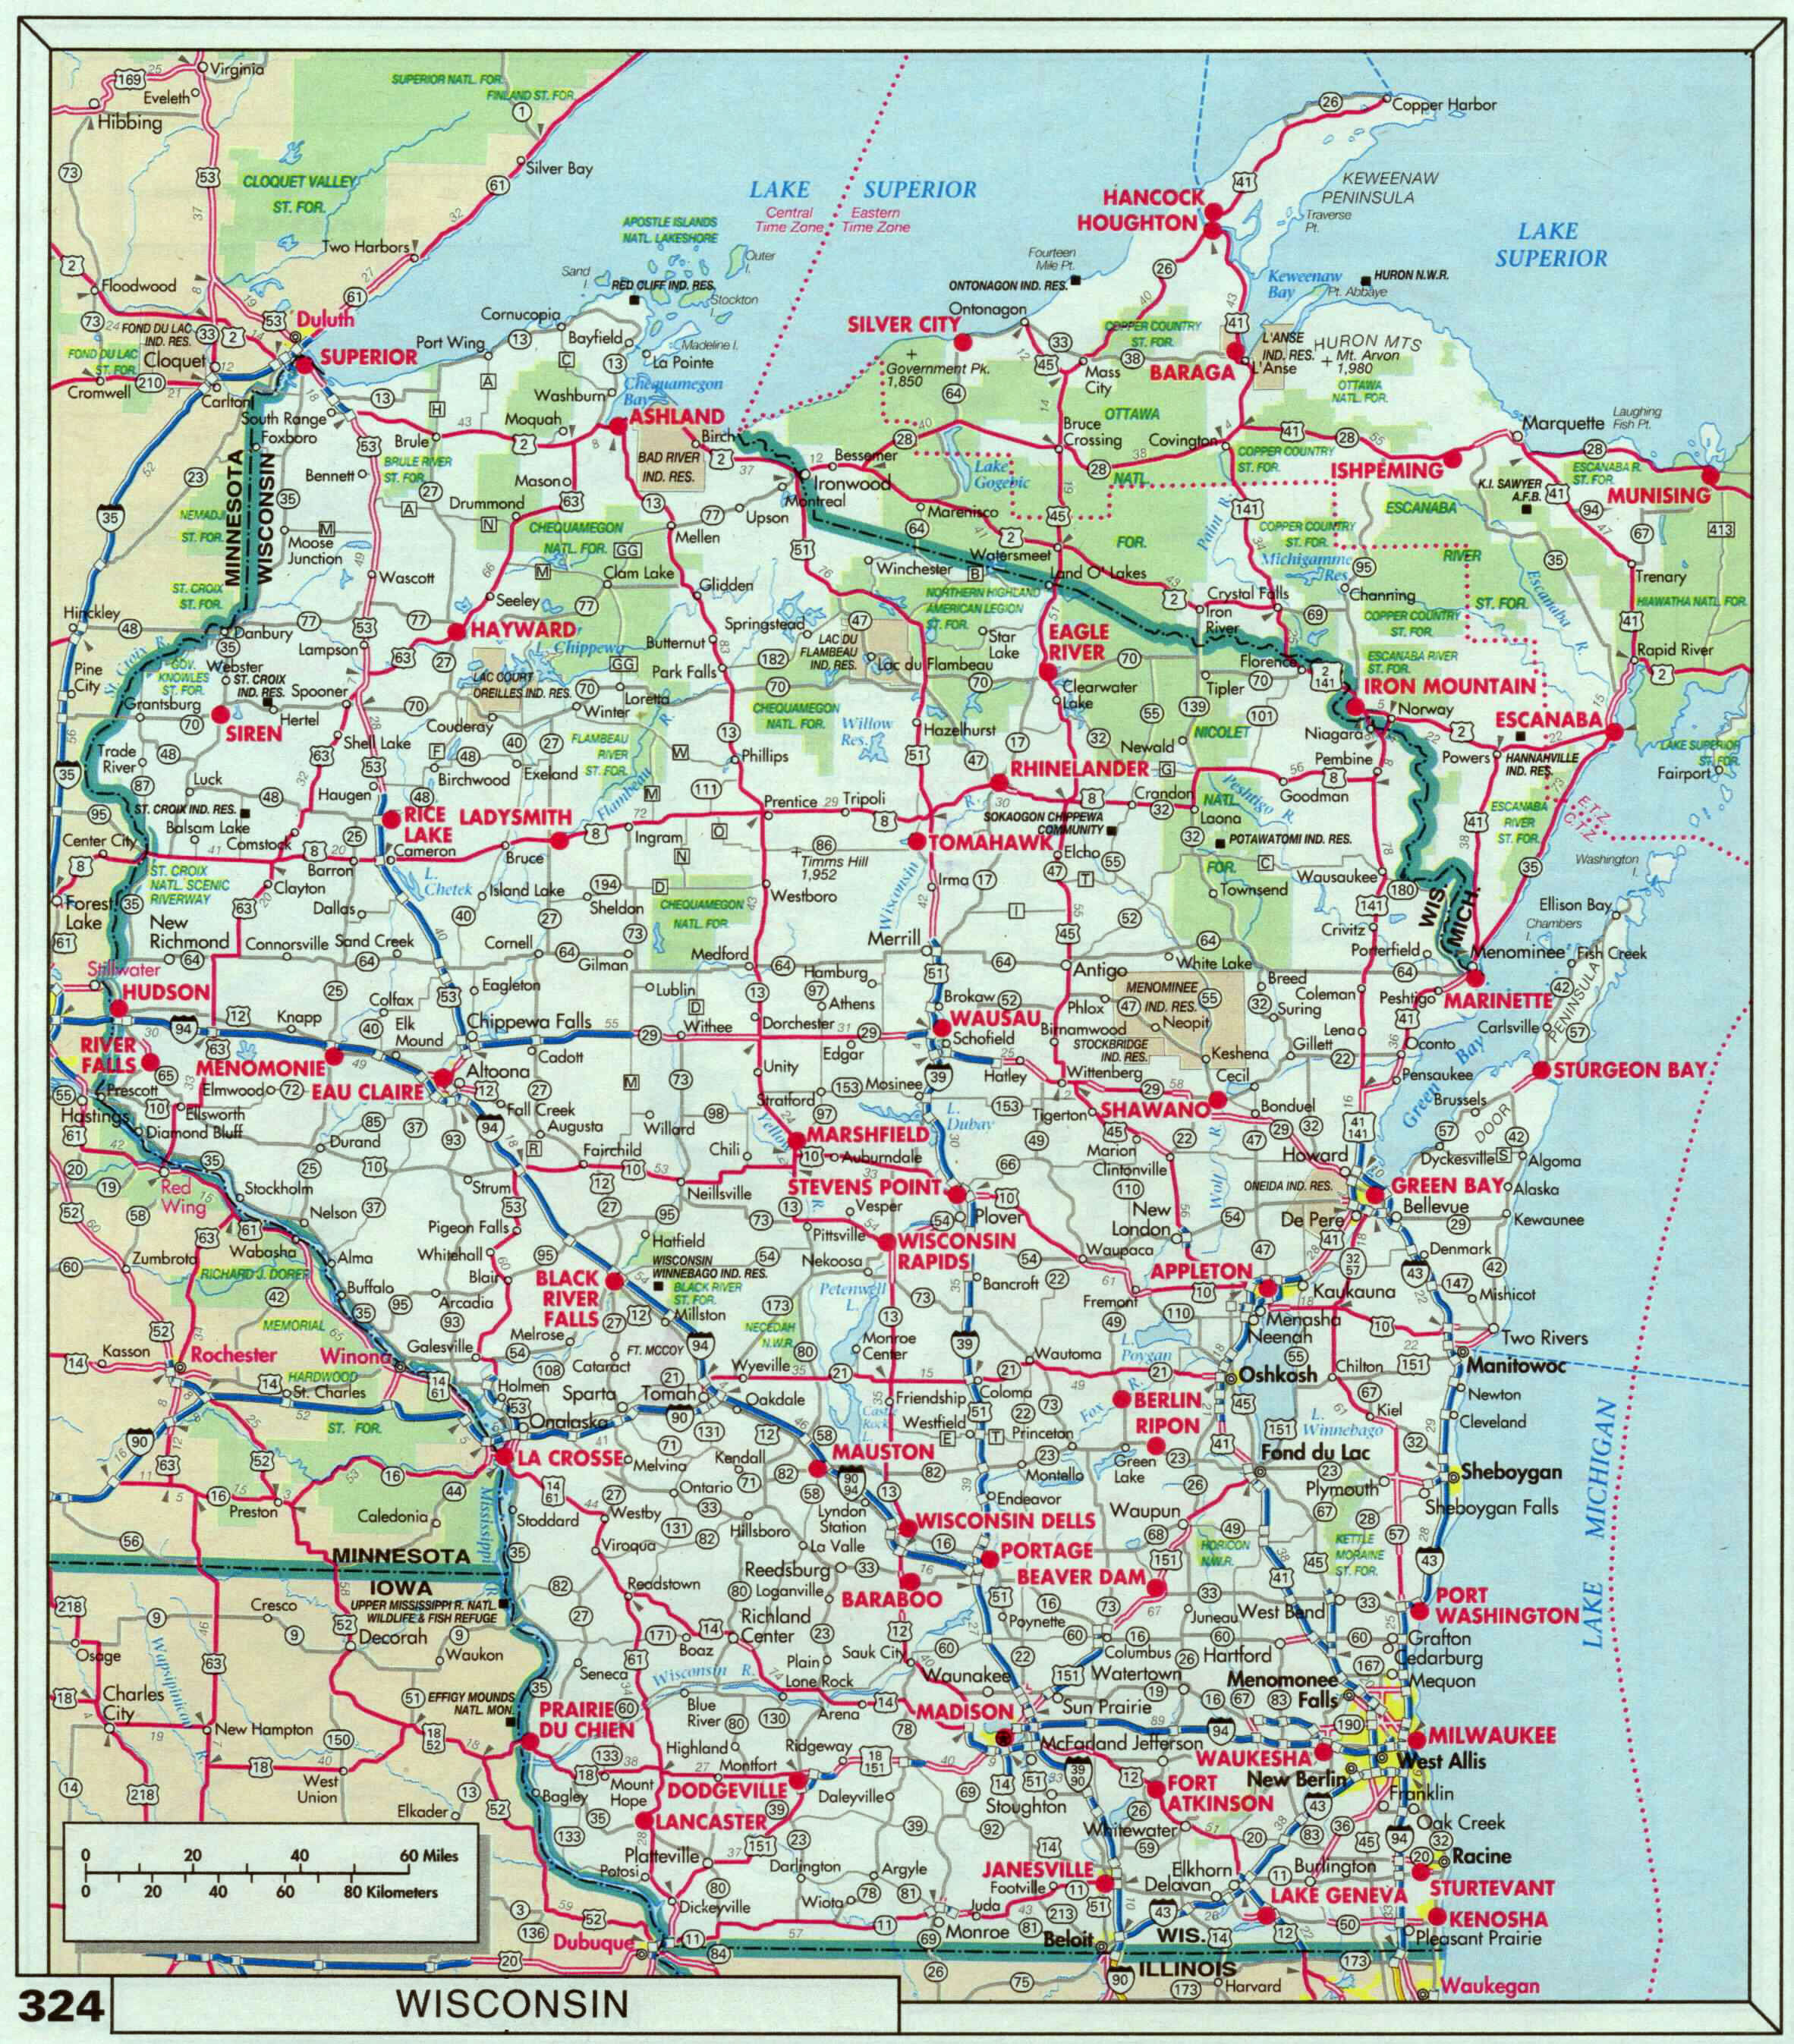 Large roads and highways map of Wisconsin state with ... on map of national forests in us, map of state parks in us, map of western us national parks, map showing national parks, map of national parks print, map of us national parks and monuments, map of usa national parks monuments and all,